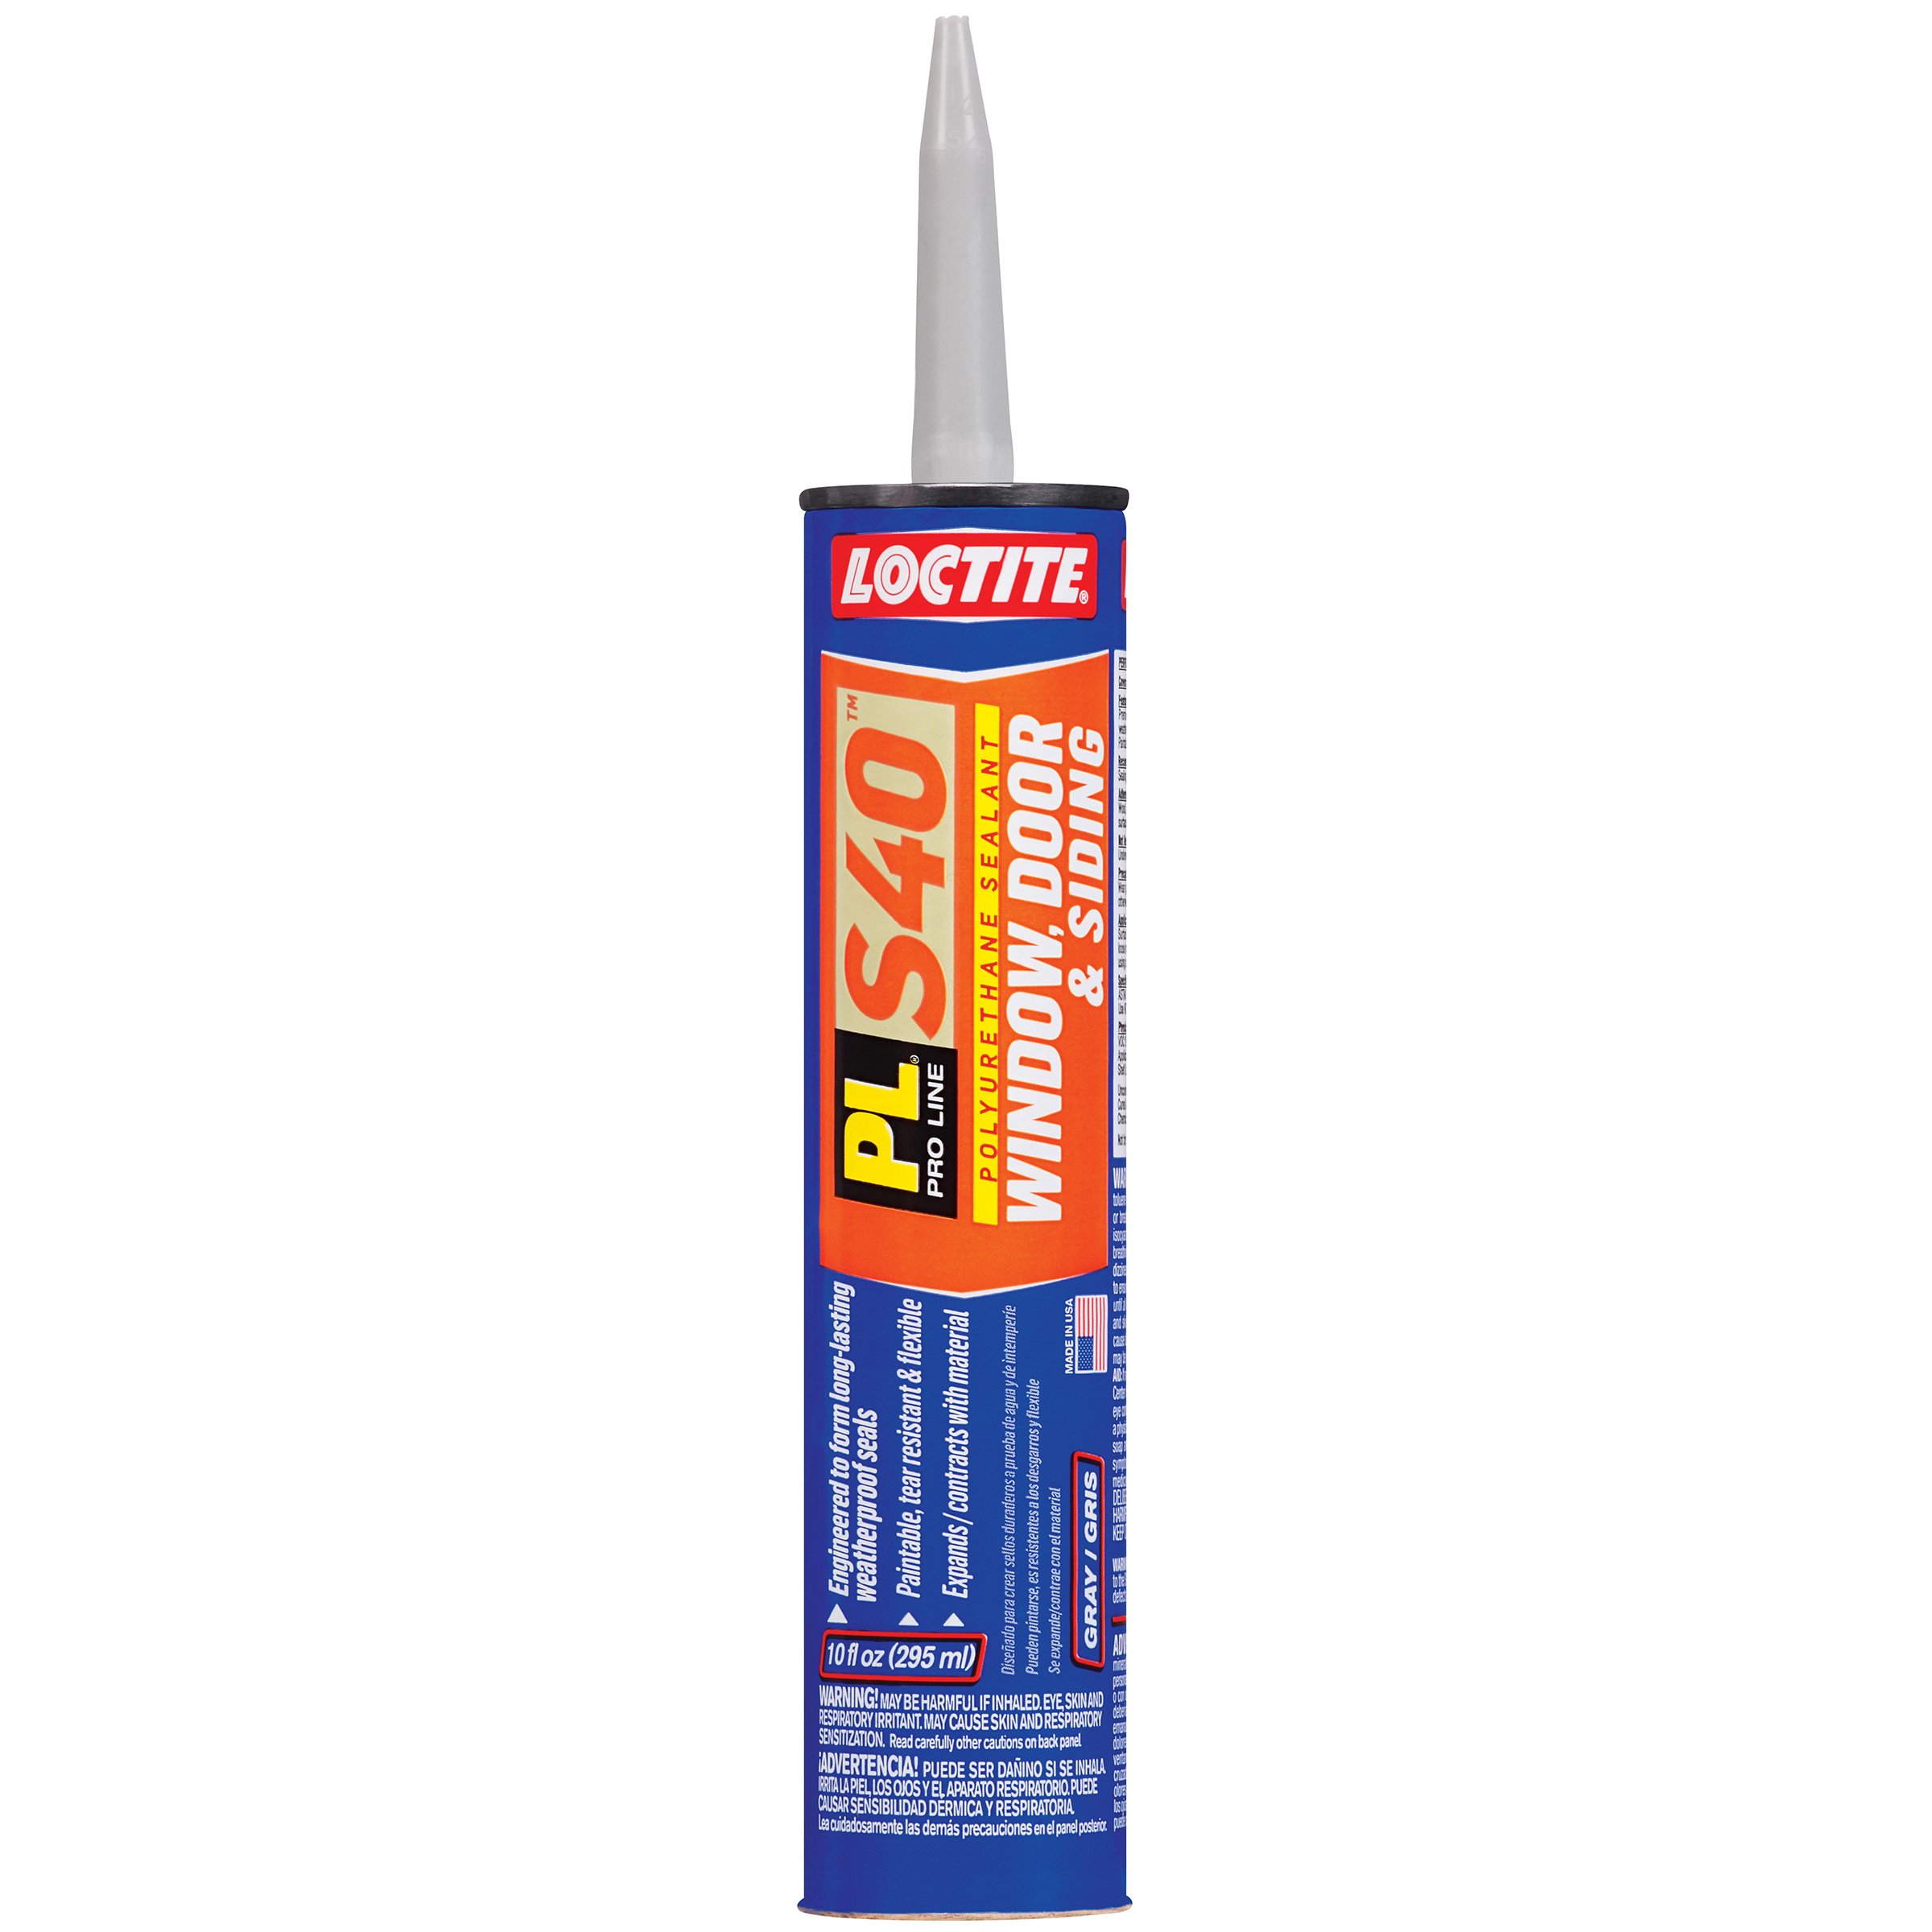 Loctite PL S40 Polyurethane Window, Door and Siding Sealant, 10 Ounce Cartridge, Gray, 12-Pack (1618176-12)